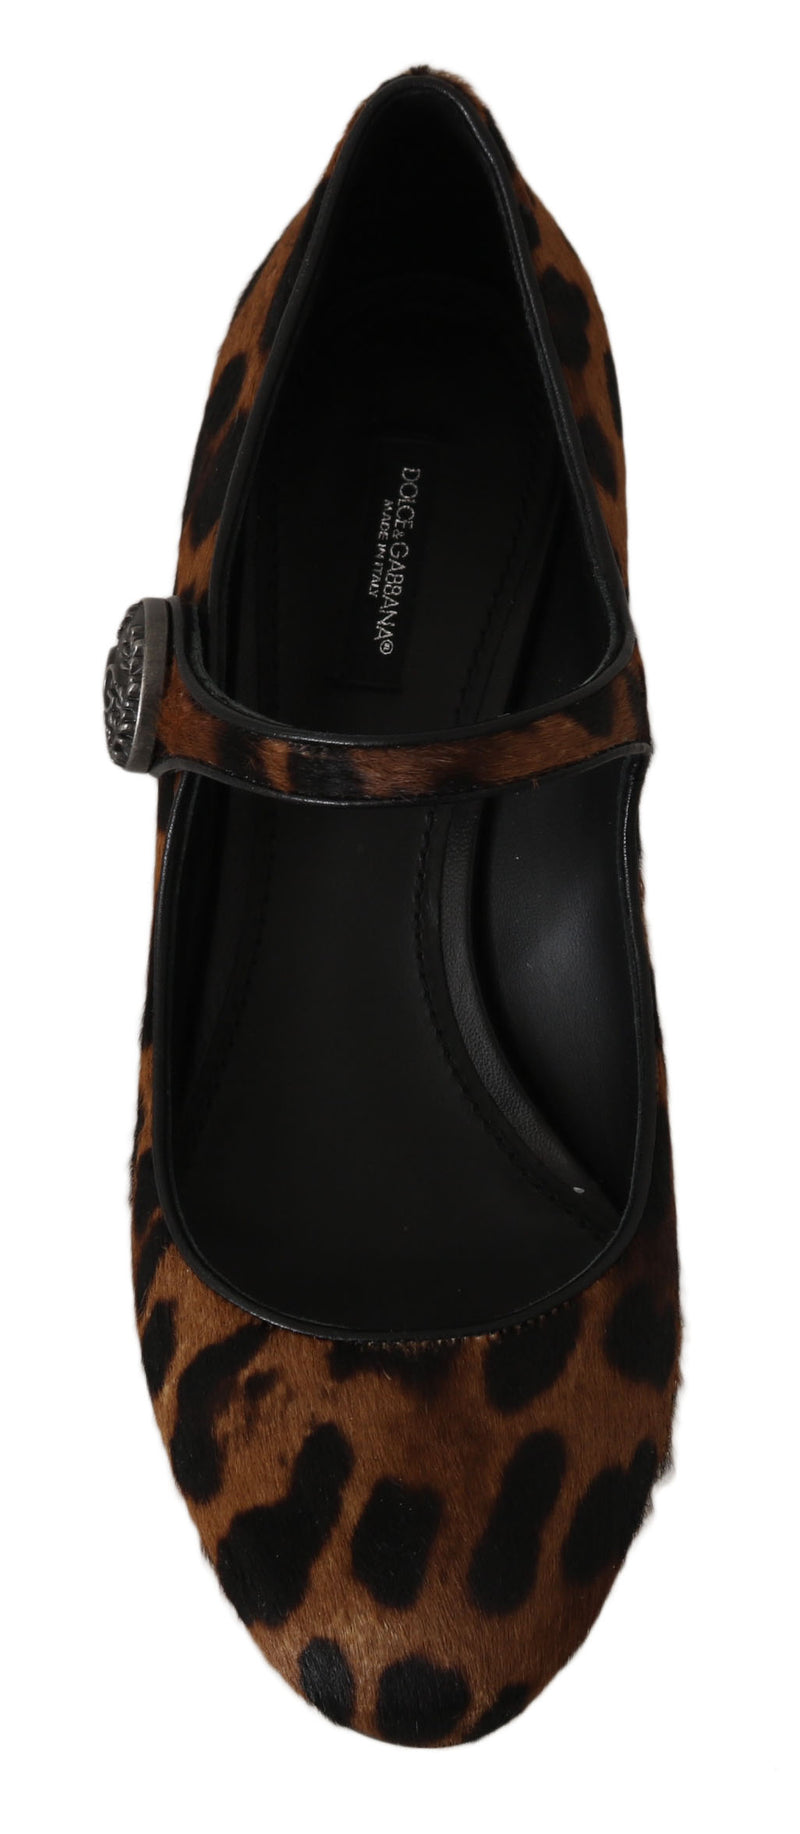 Brown Calf Hair Leather Mary Janes Shoes